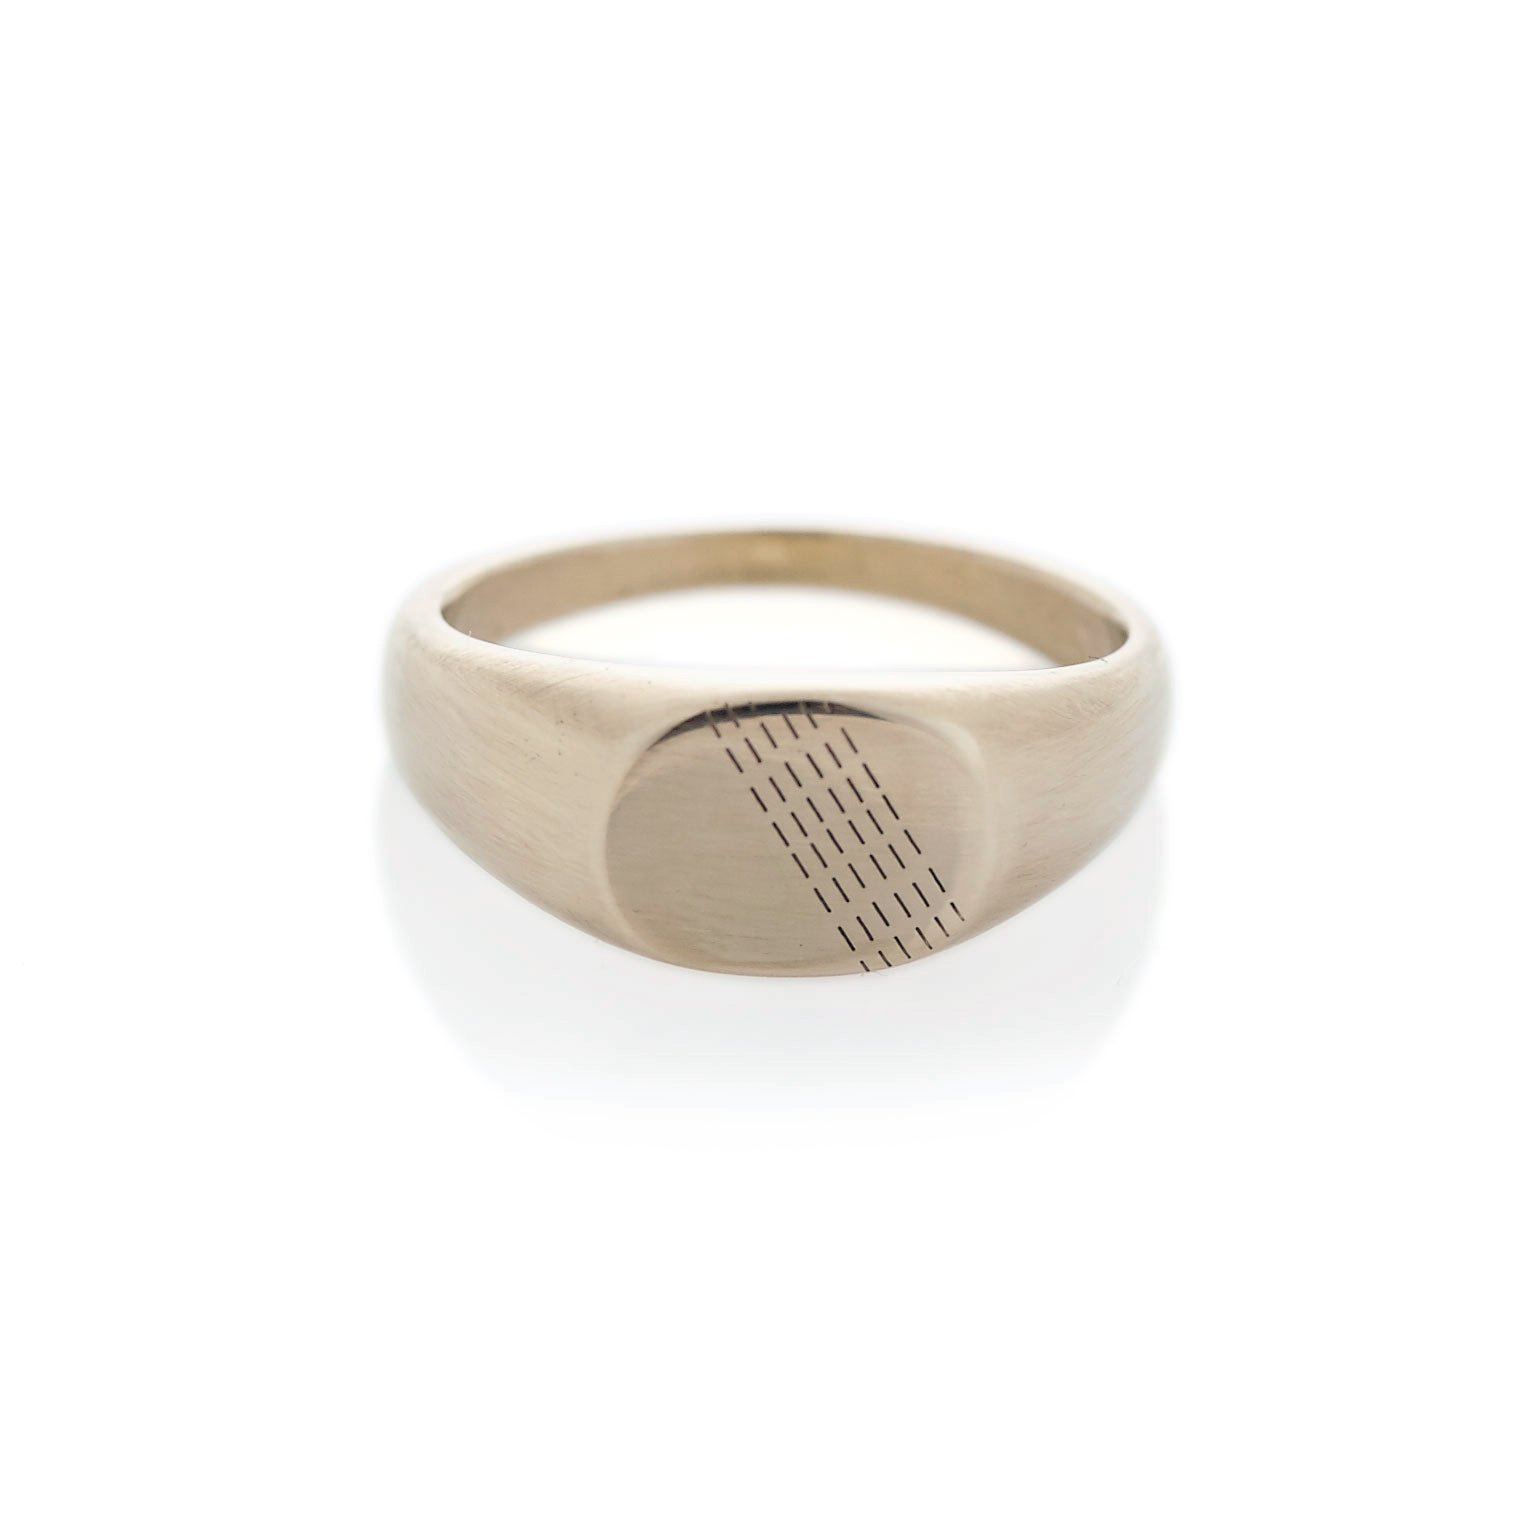 Diagonal rain white gold oval signet ring